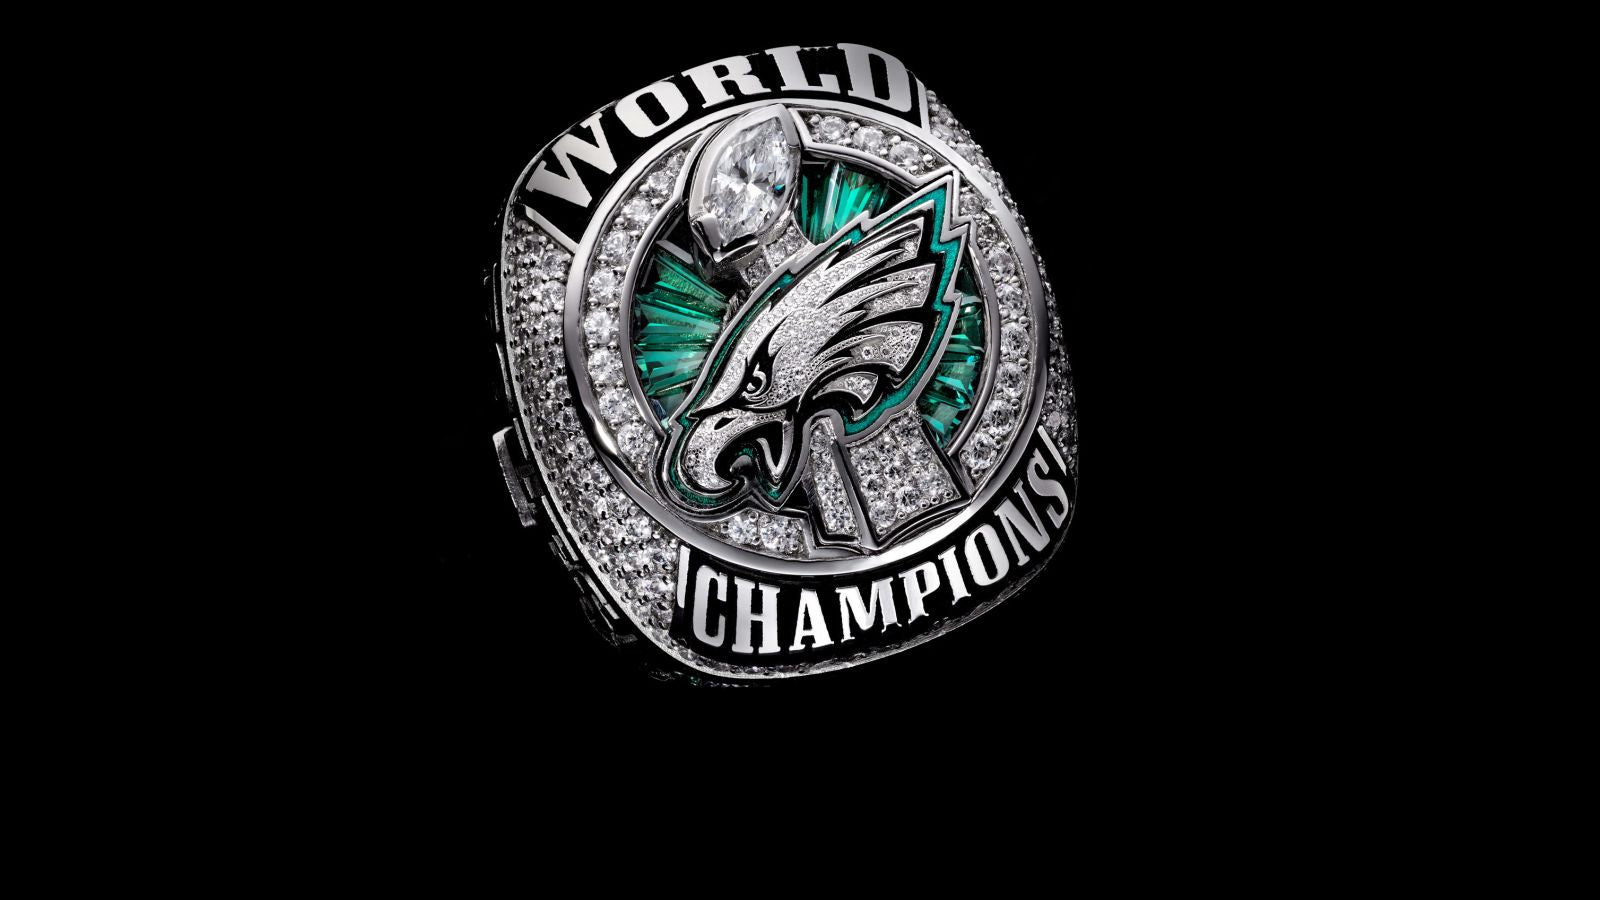 2018 Philadelphia Eagles Super Bowl Championship Ring